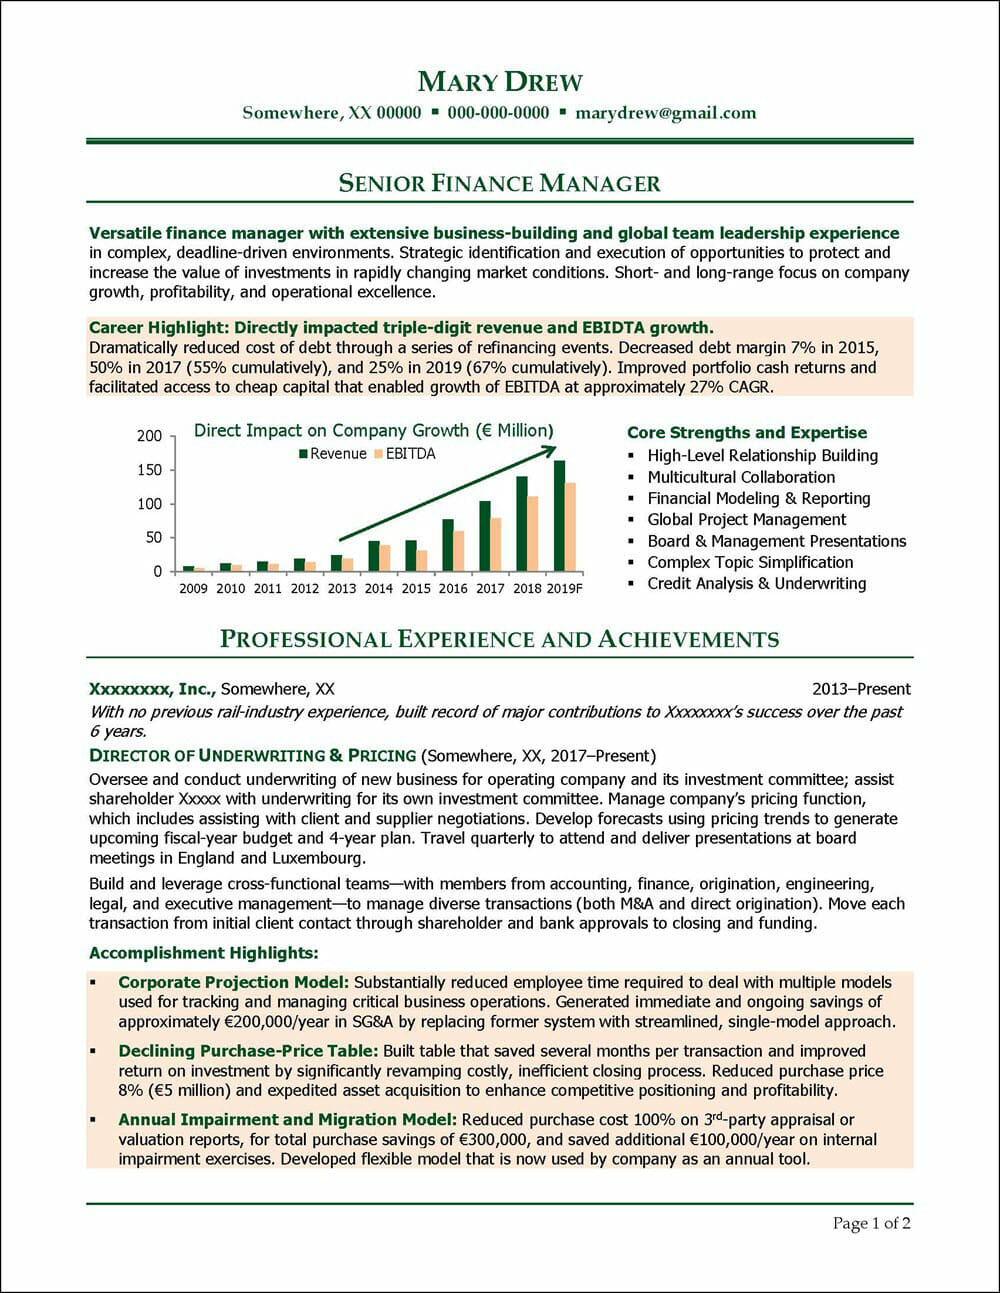 Senior Finance Manager Resume Page 1